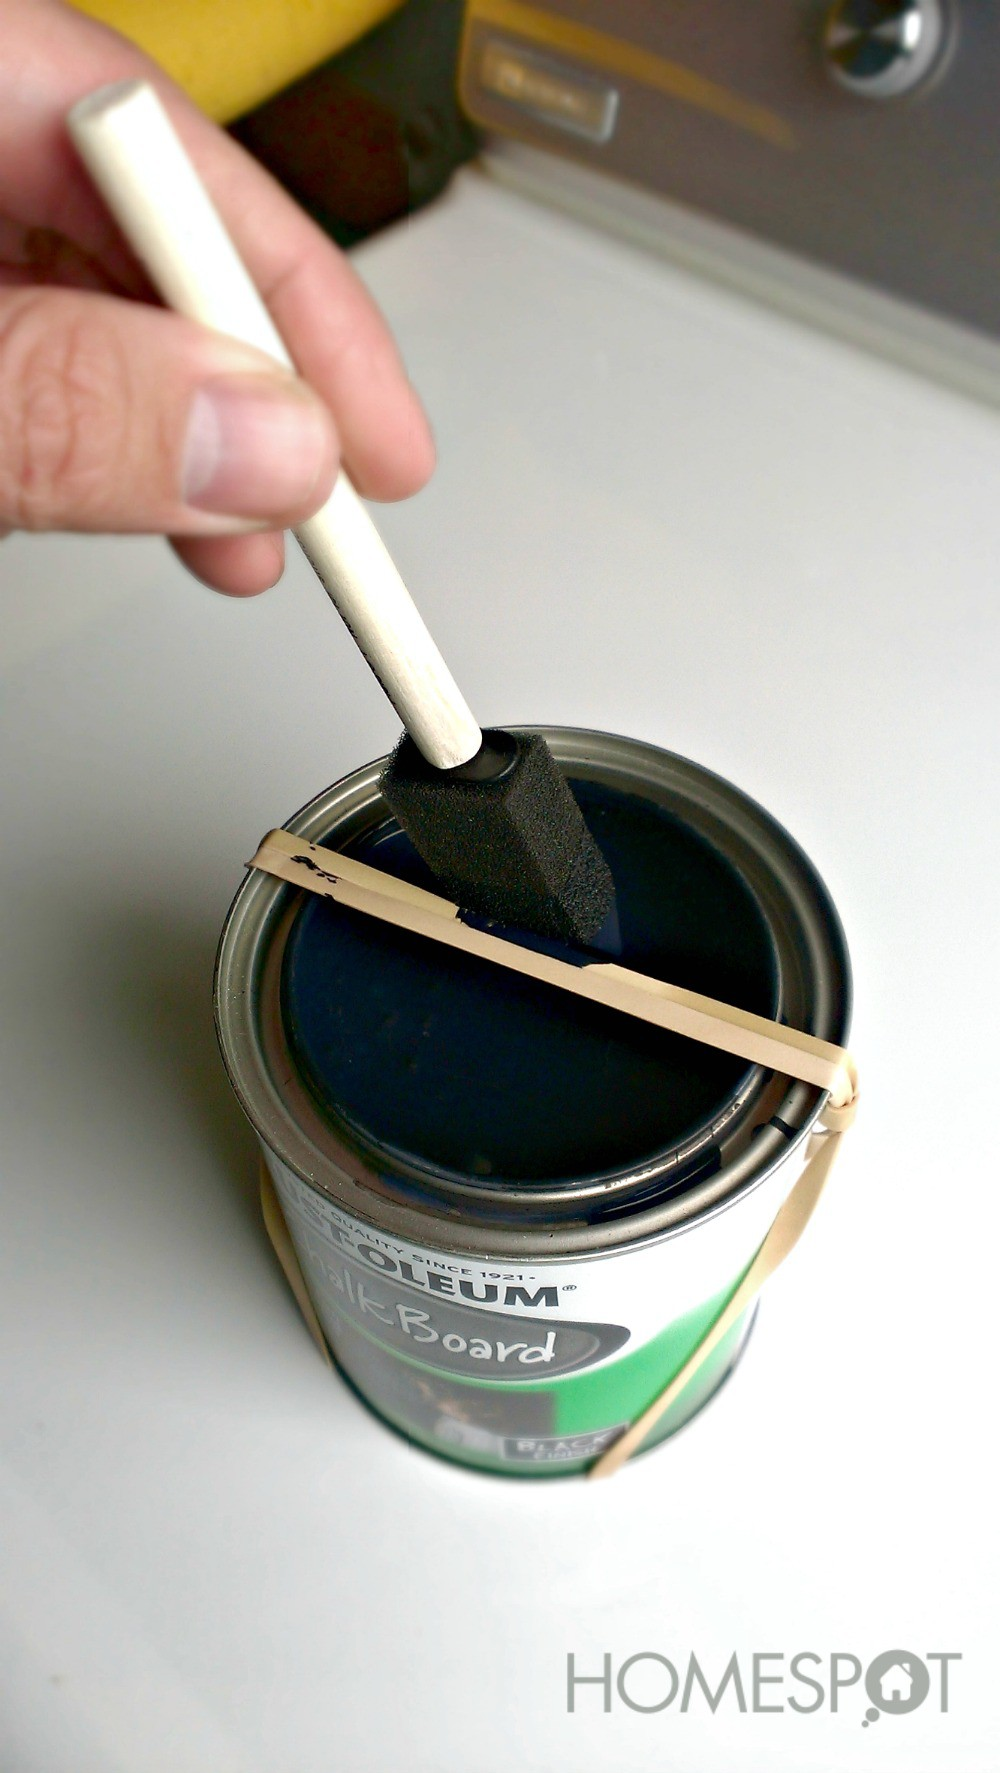 10 Uses for Rubber Bands Around the Home